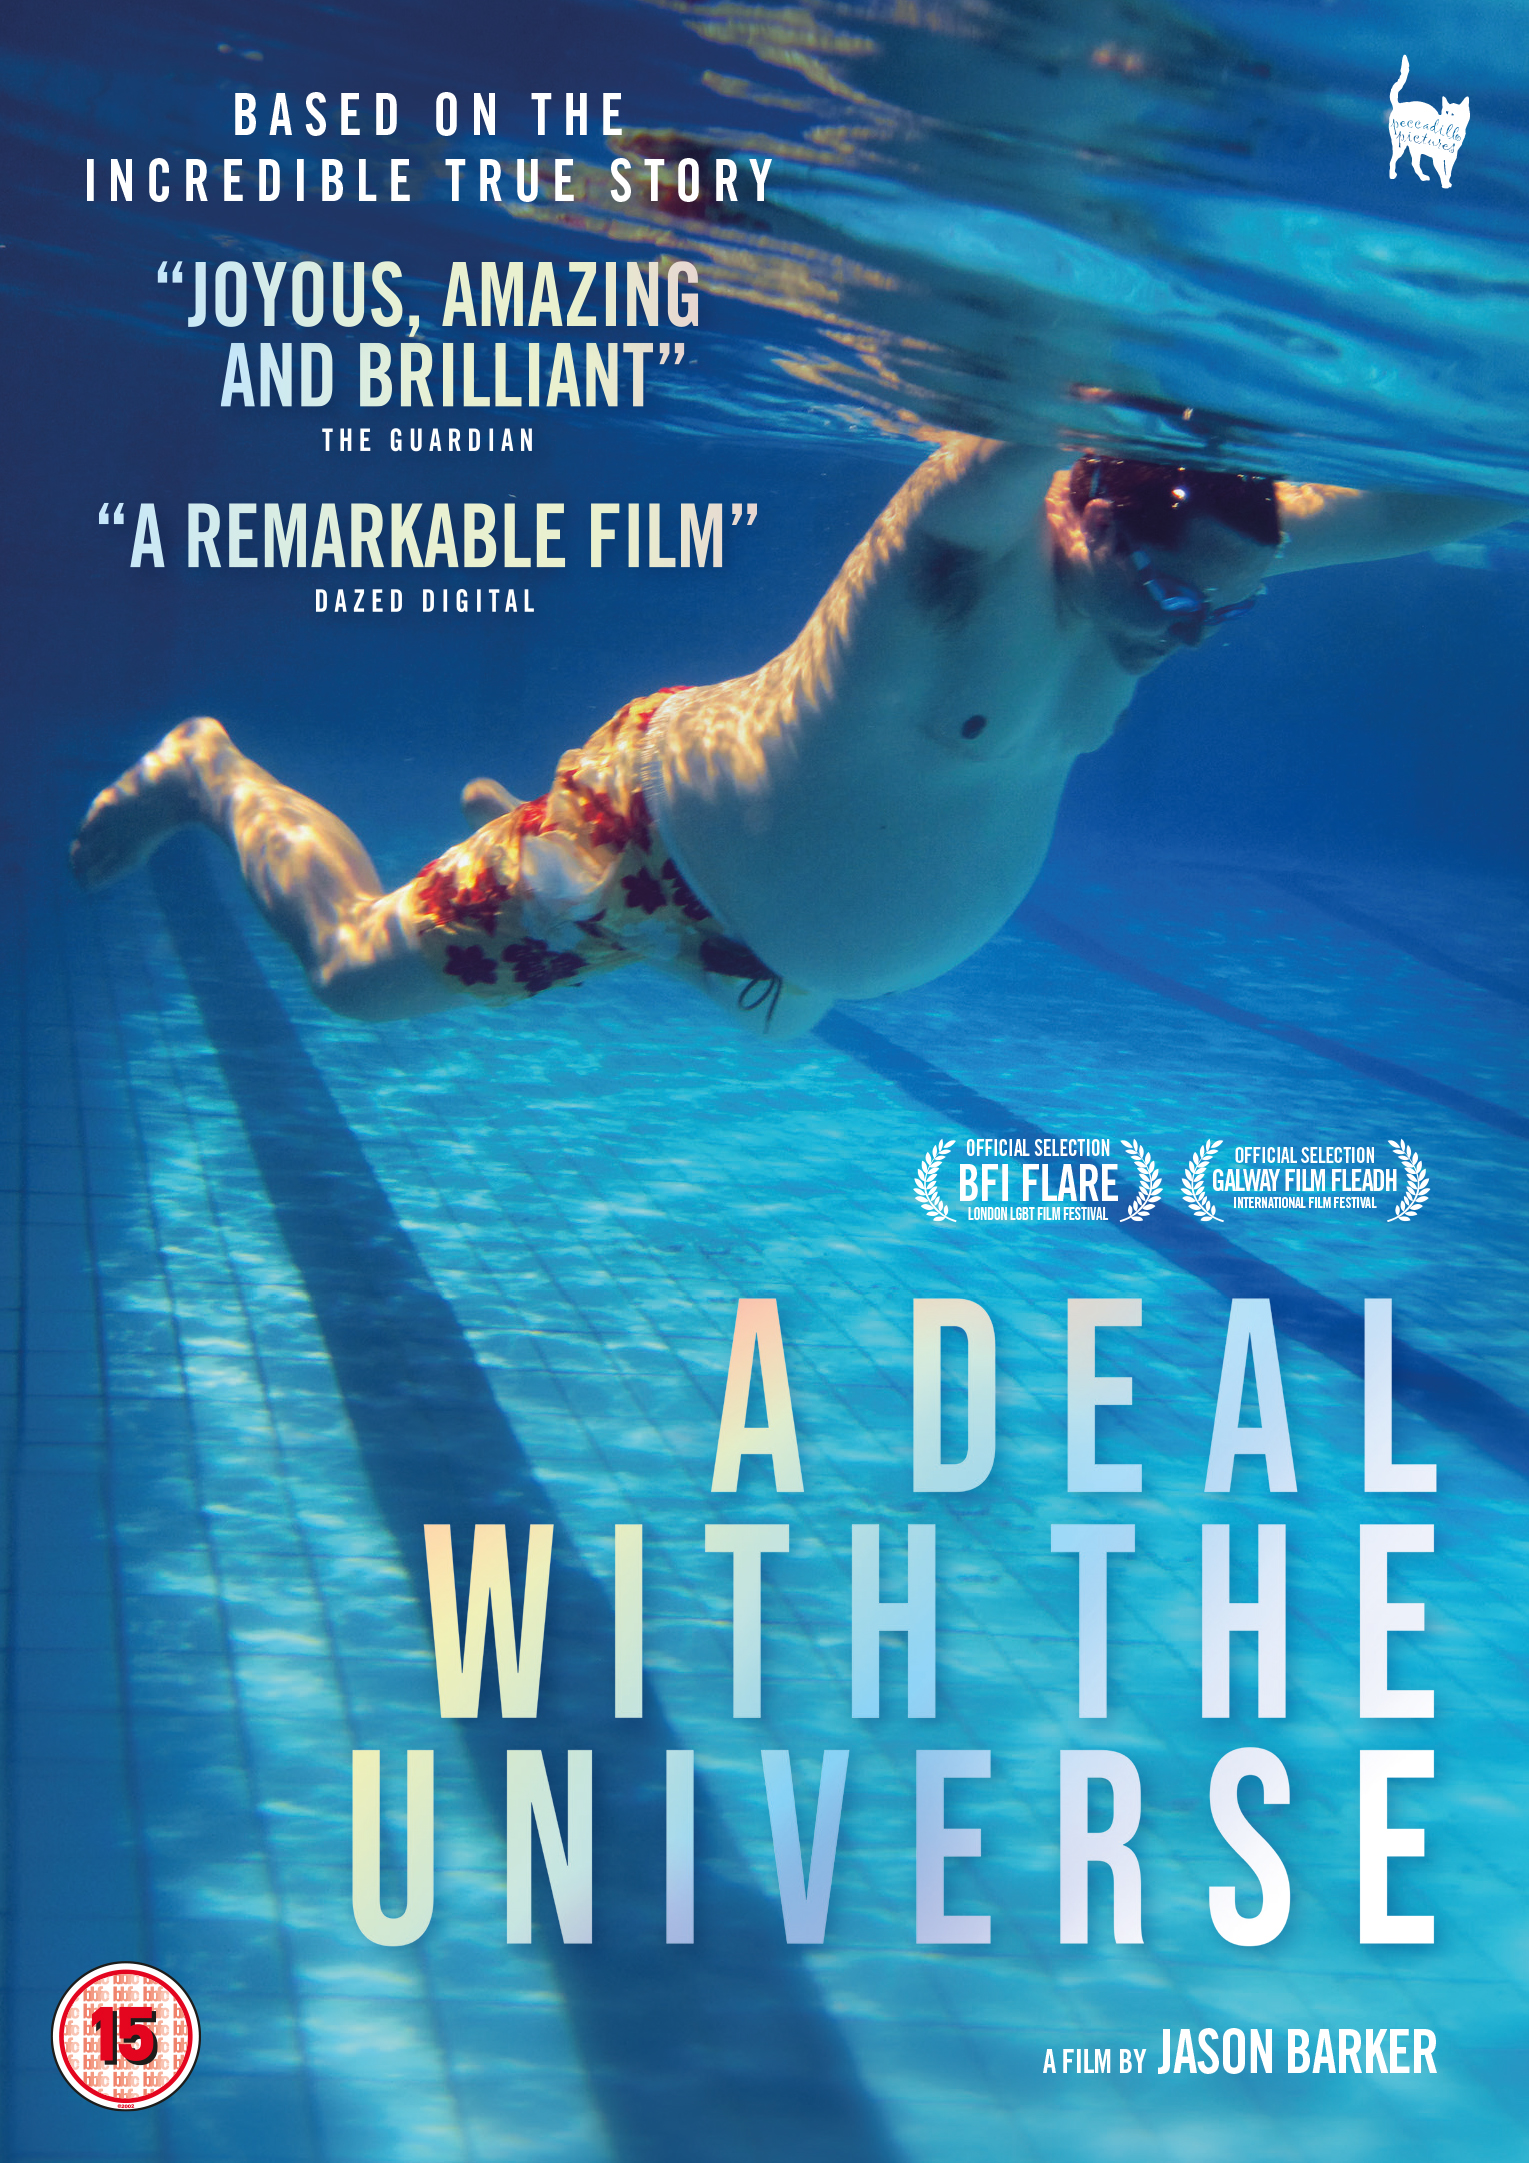 A Deal with the Universe follows transgender filmmaker Jason Barker's incredible story of how he came to give birth to his child. Autobiographical and made entirely from personal archive and home video diaries, Jason Barker and his partner invite you into their world, sharing their difficult decisions, processes and moments of joy and heartbreak in their journey to become parents. Filmed over 15 years, A Deal with the Universe delivers a unique and intimate insight into the struggles of becoming a parent and gender identity.